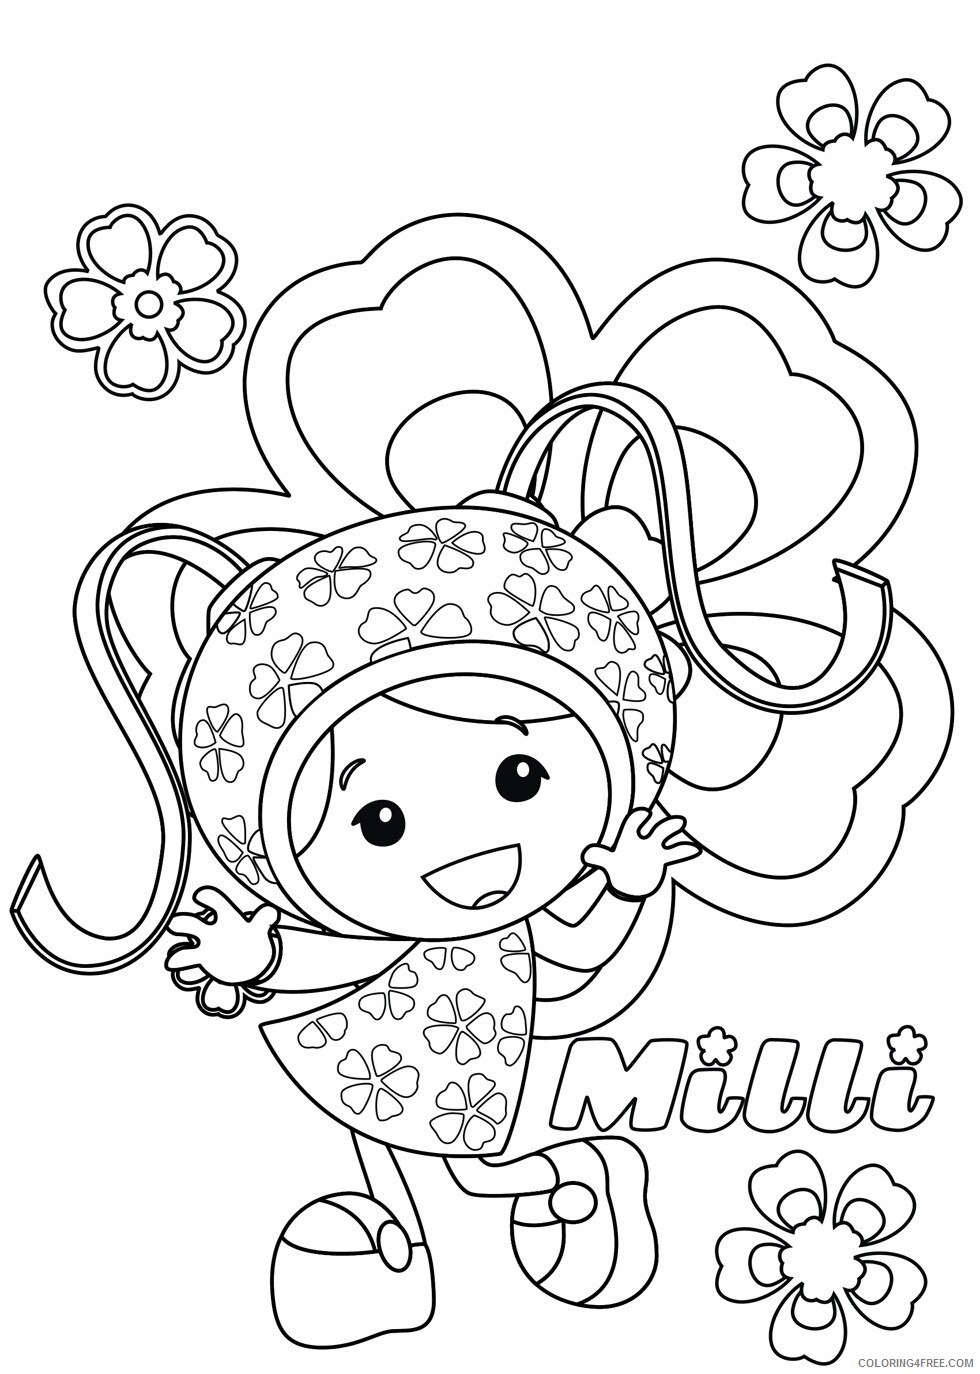 Team Umizoomi Coloring Pages TV Film Milli Team Umizoomi 2 Printable 2020 08434 Coloring4free